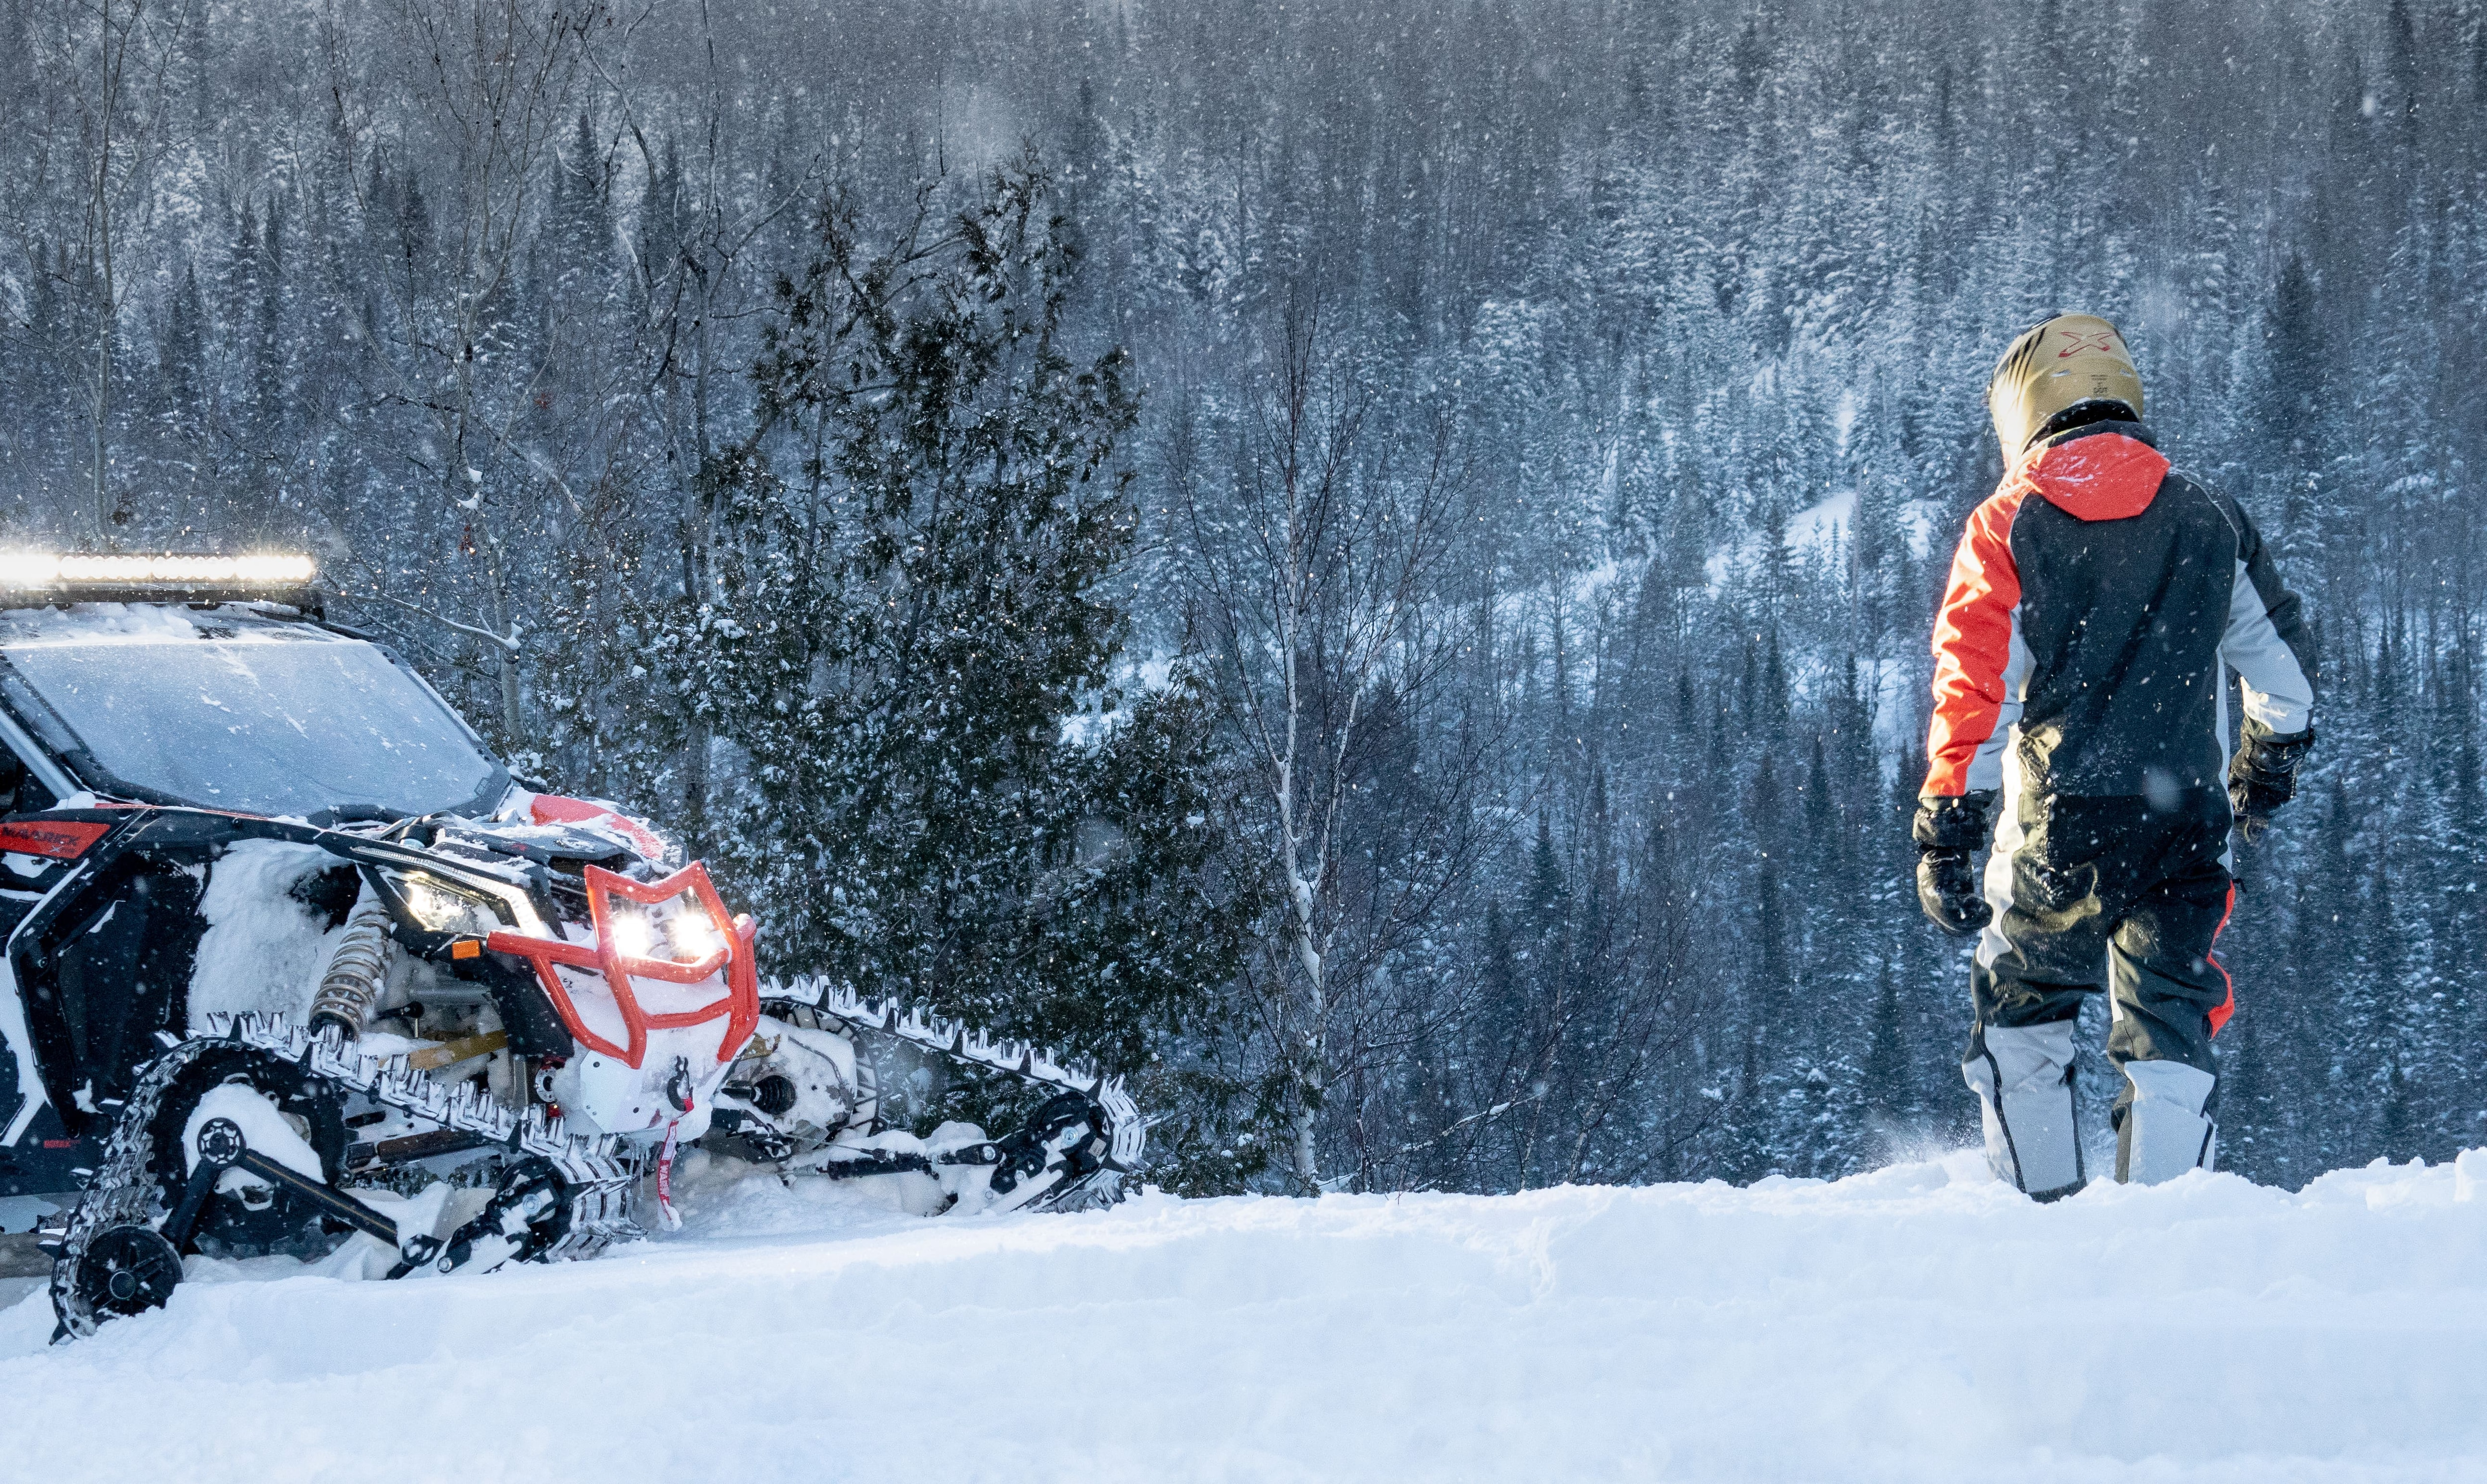 A rider in the snow with their side-by-side vehicle